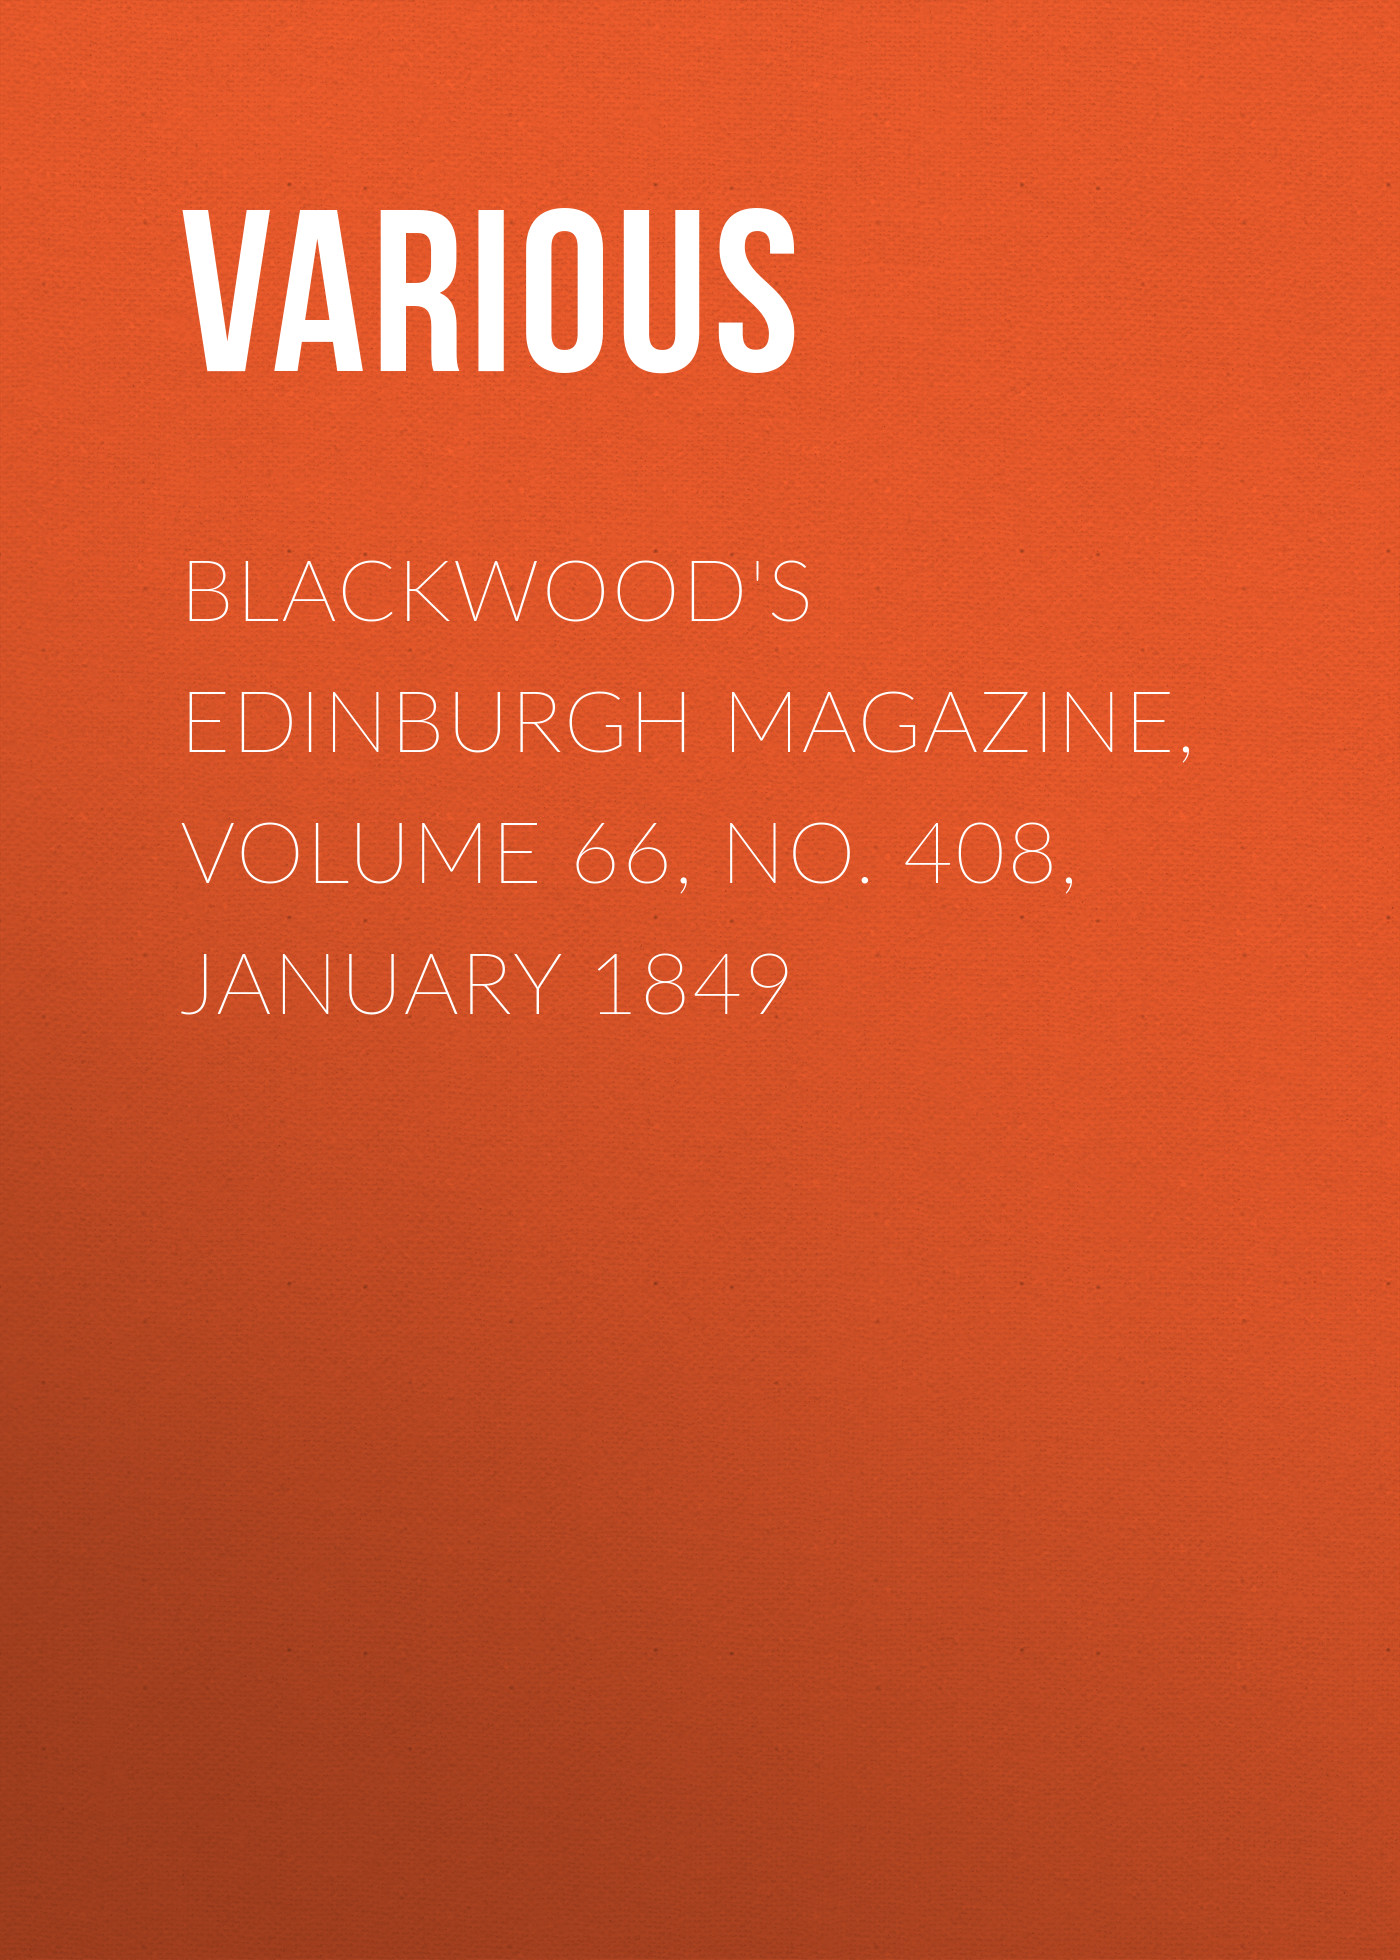 Various Blackwood's Edinburgh Magazine, Volume 66, No. 408, January 1849